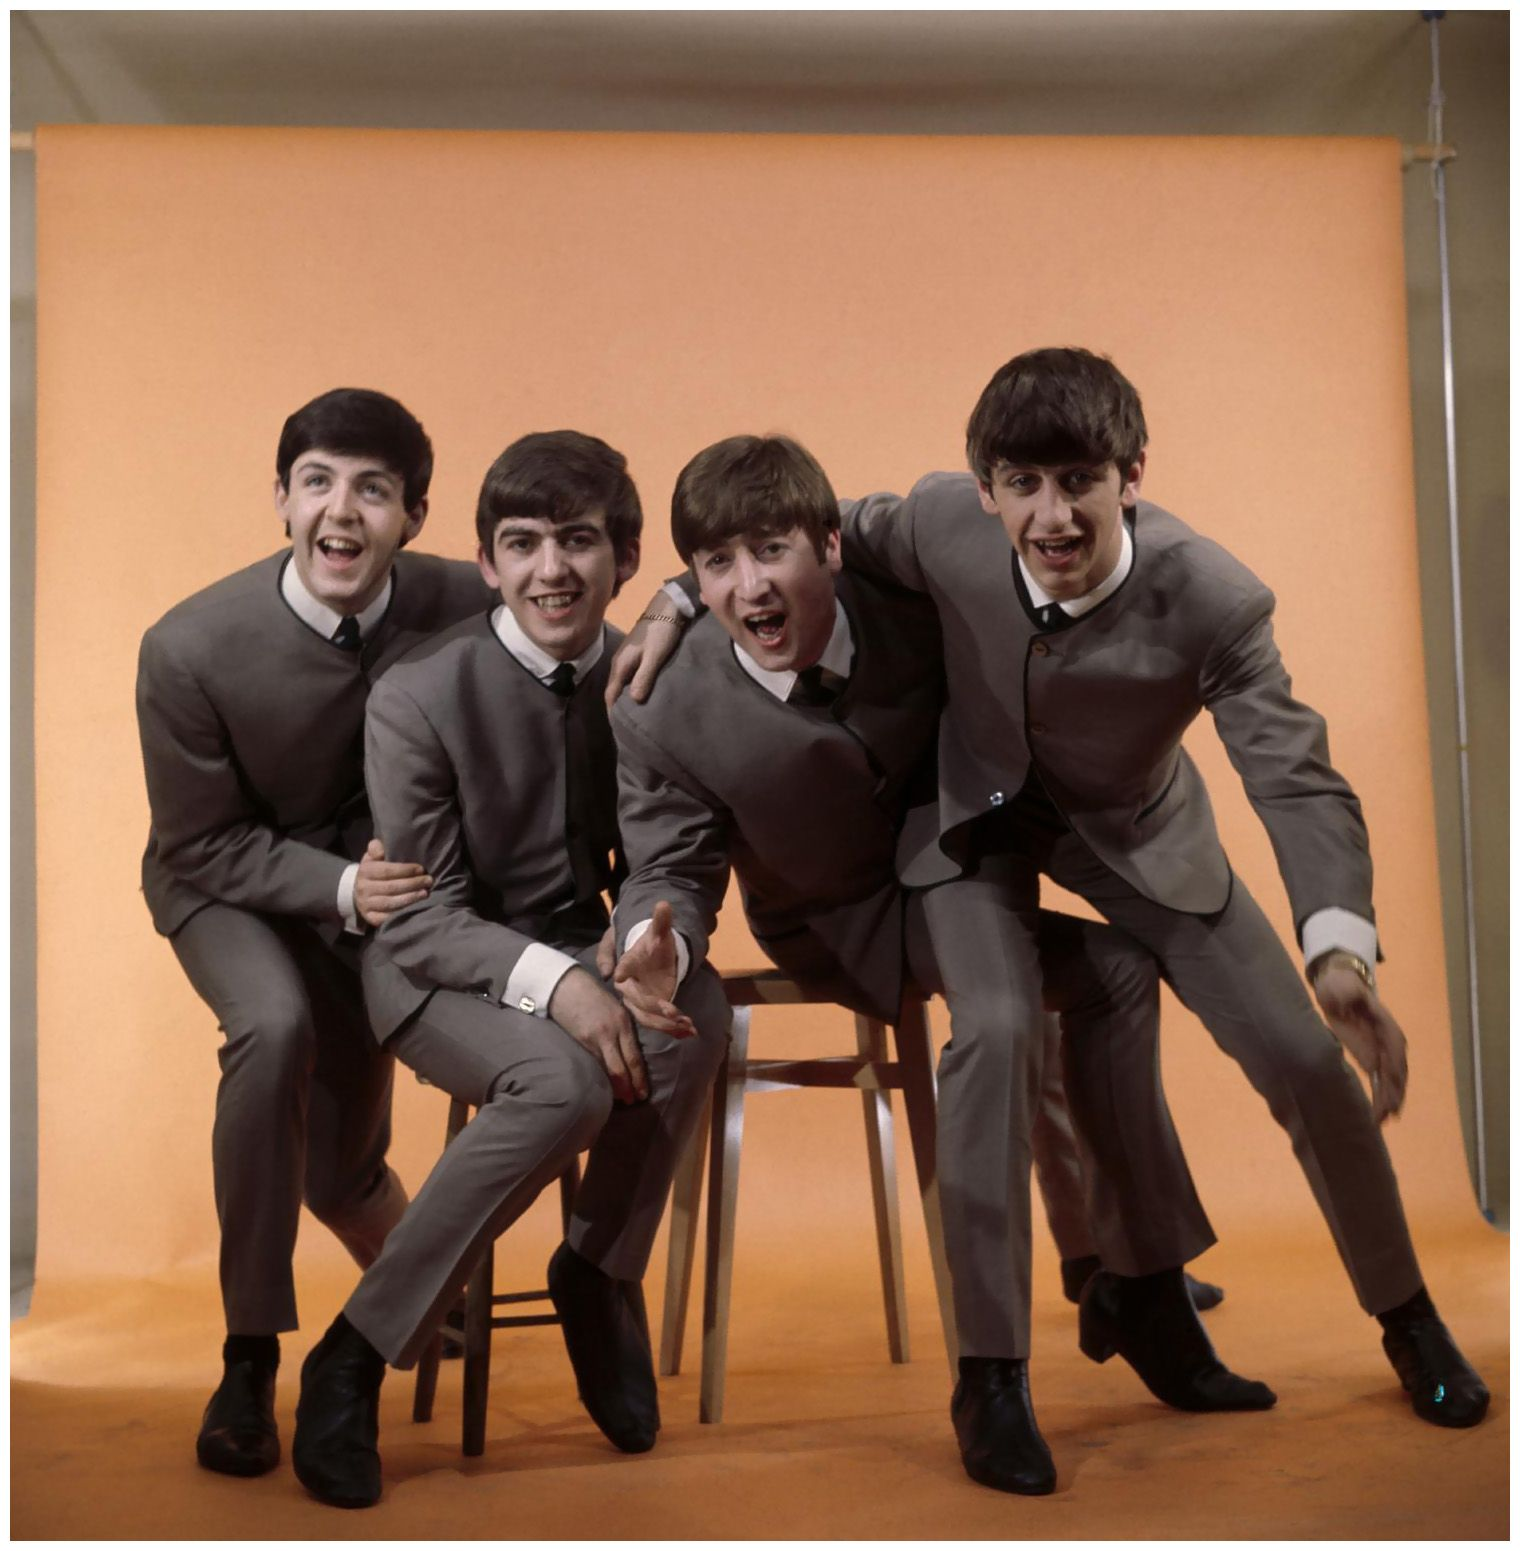 The Beatles (1964) Photo Bob Van Dam